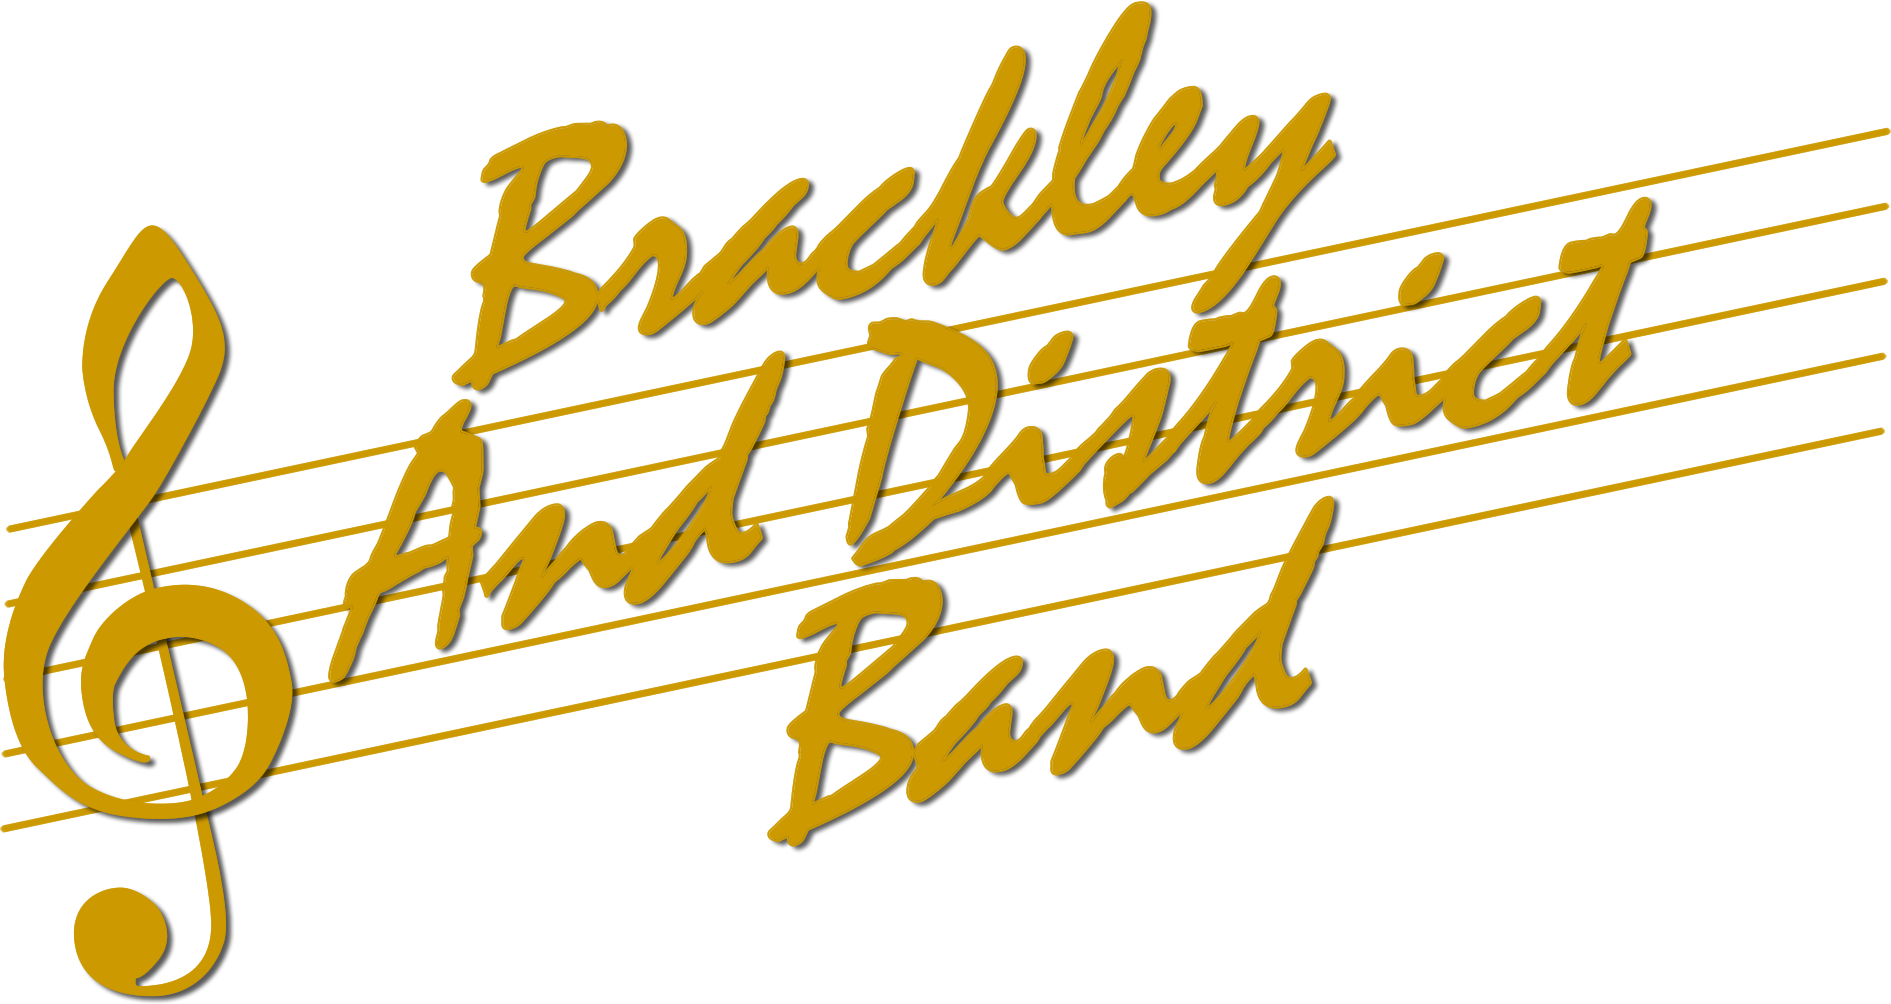 Brackley & District Band<span>.</span>